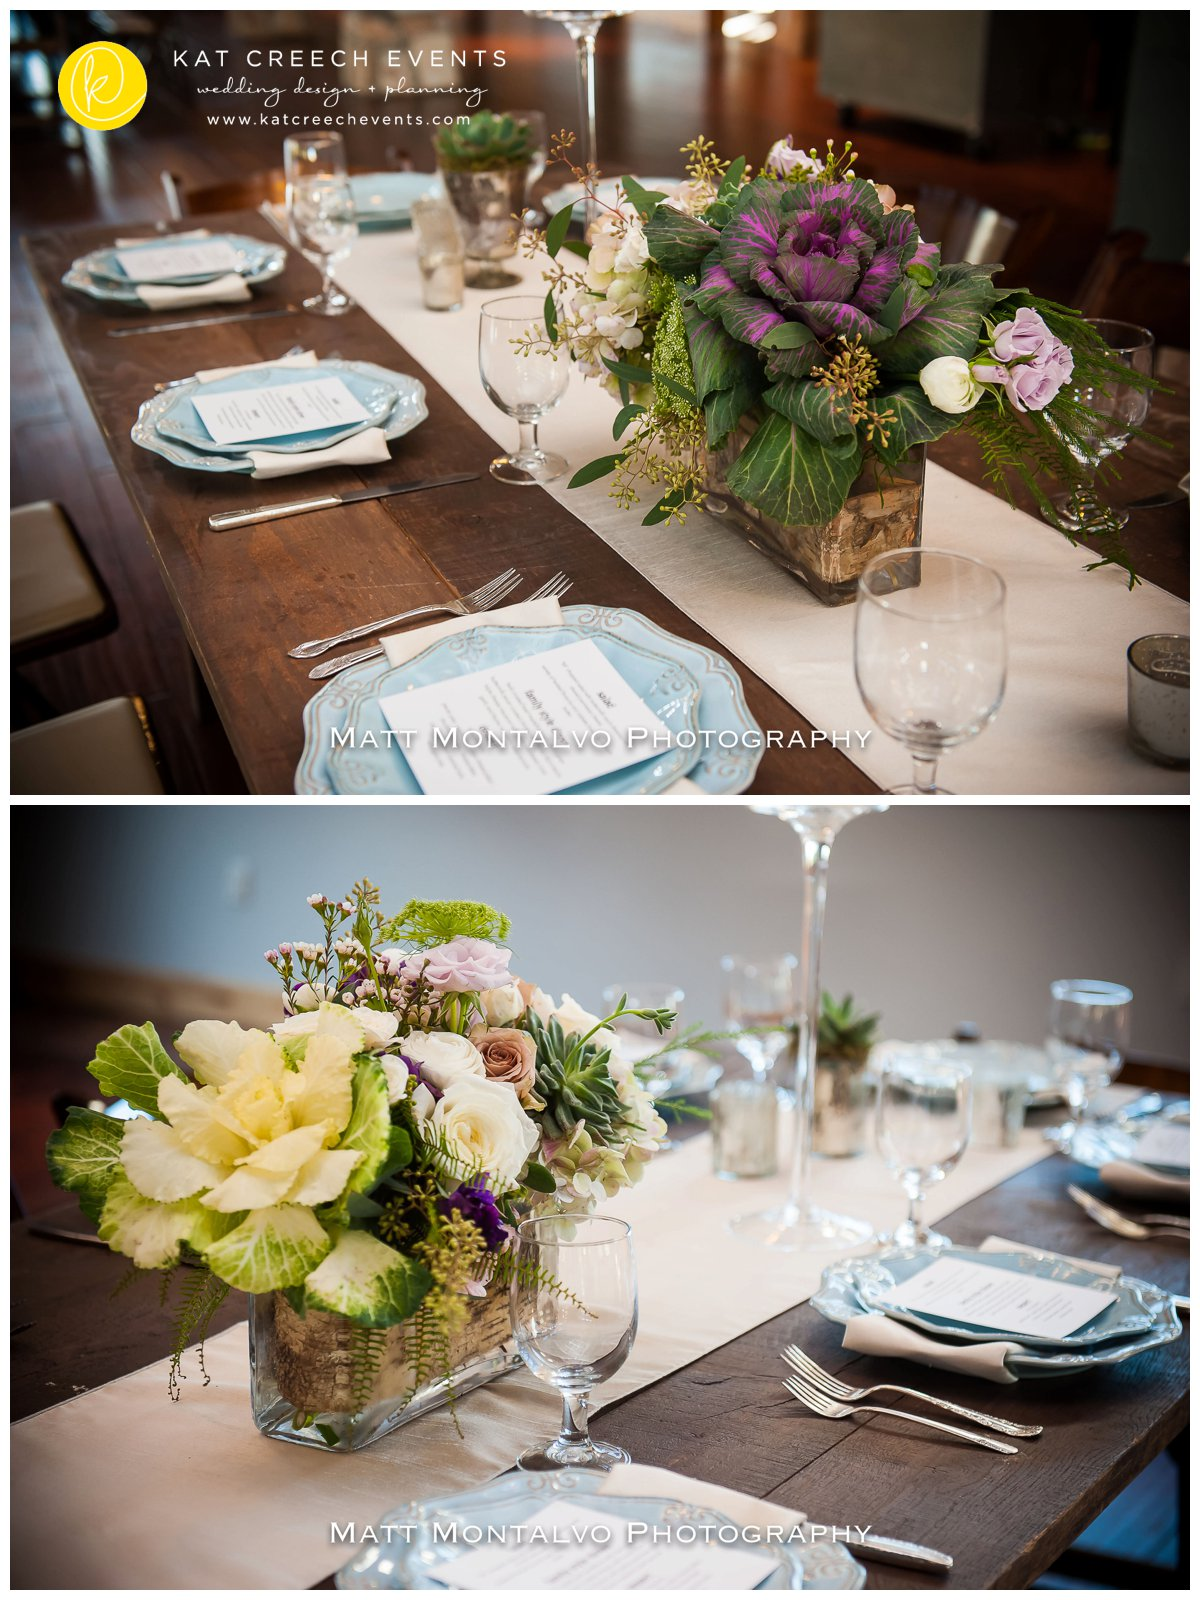 unique floral centerpiece | blue chargers | farm table |kat creech events | wedding stylist